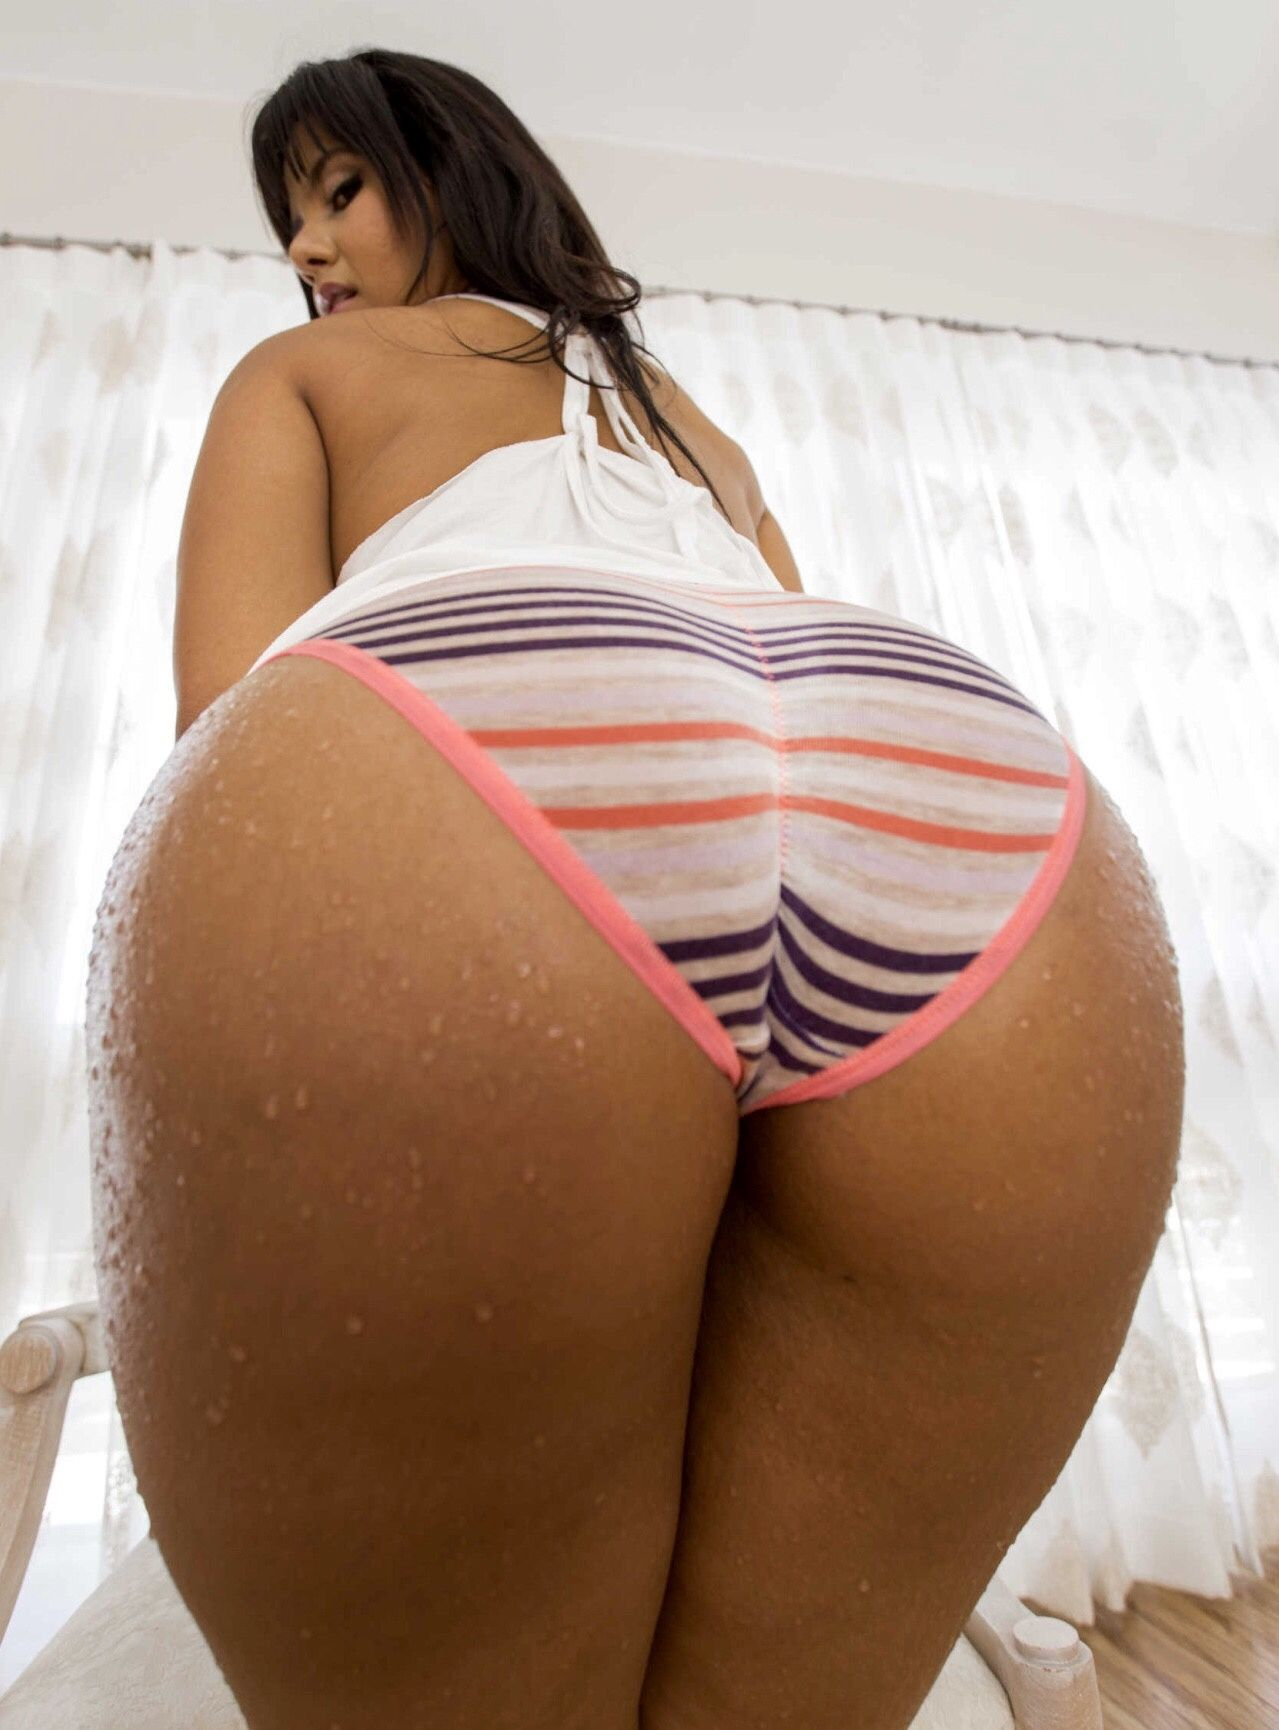 Asian phat azz like this!